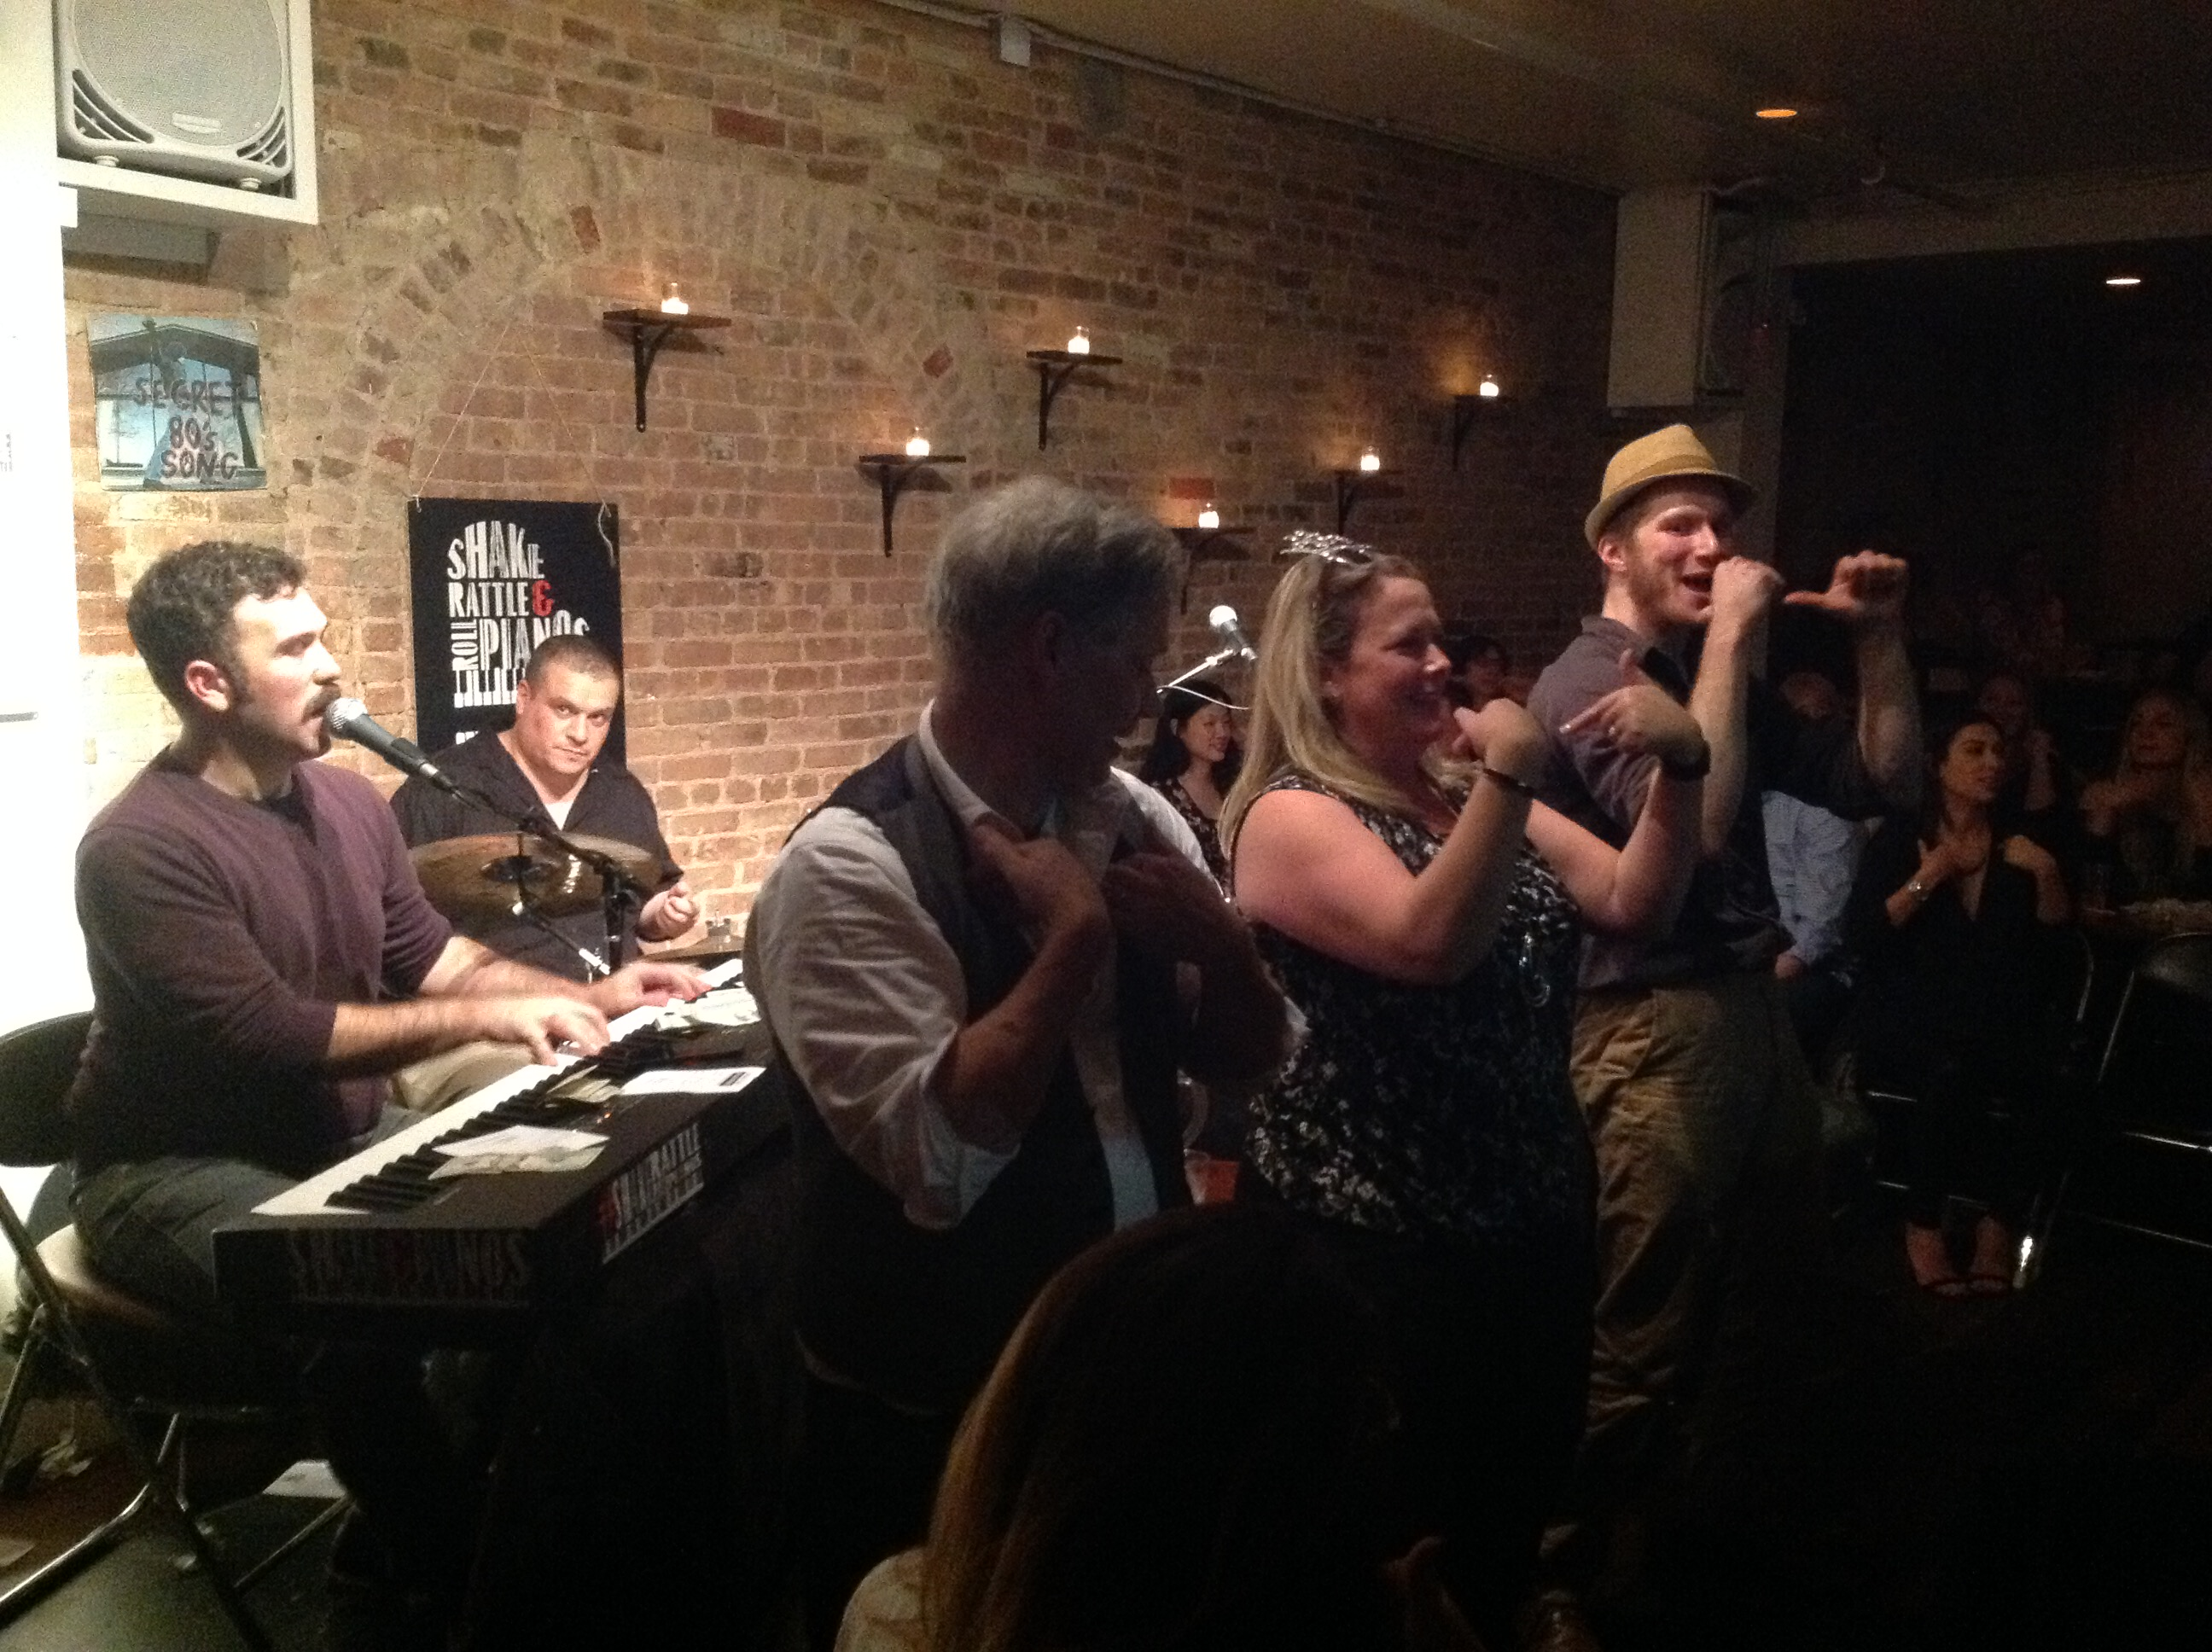 Shake Rattle & Roll Dueling Pianos NYC | The Best NYC